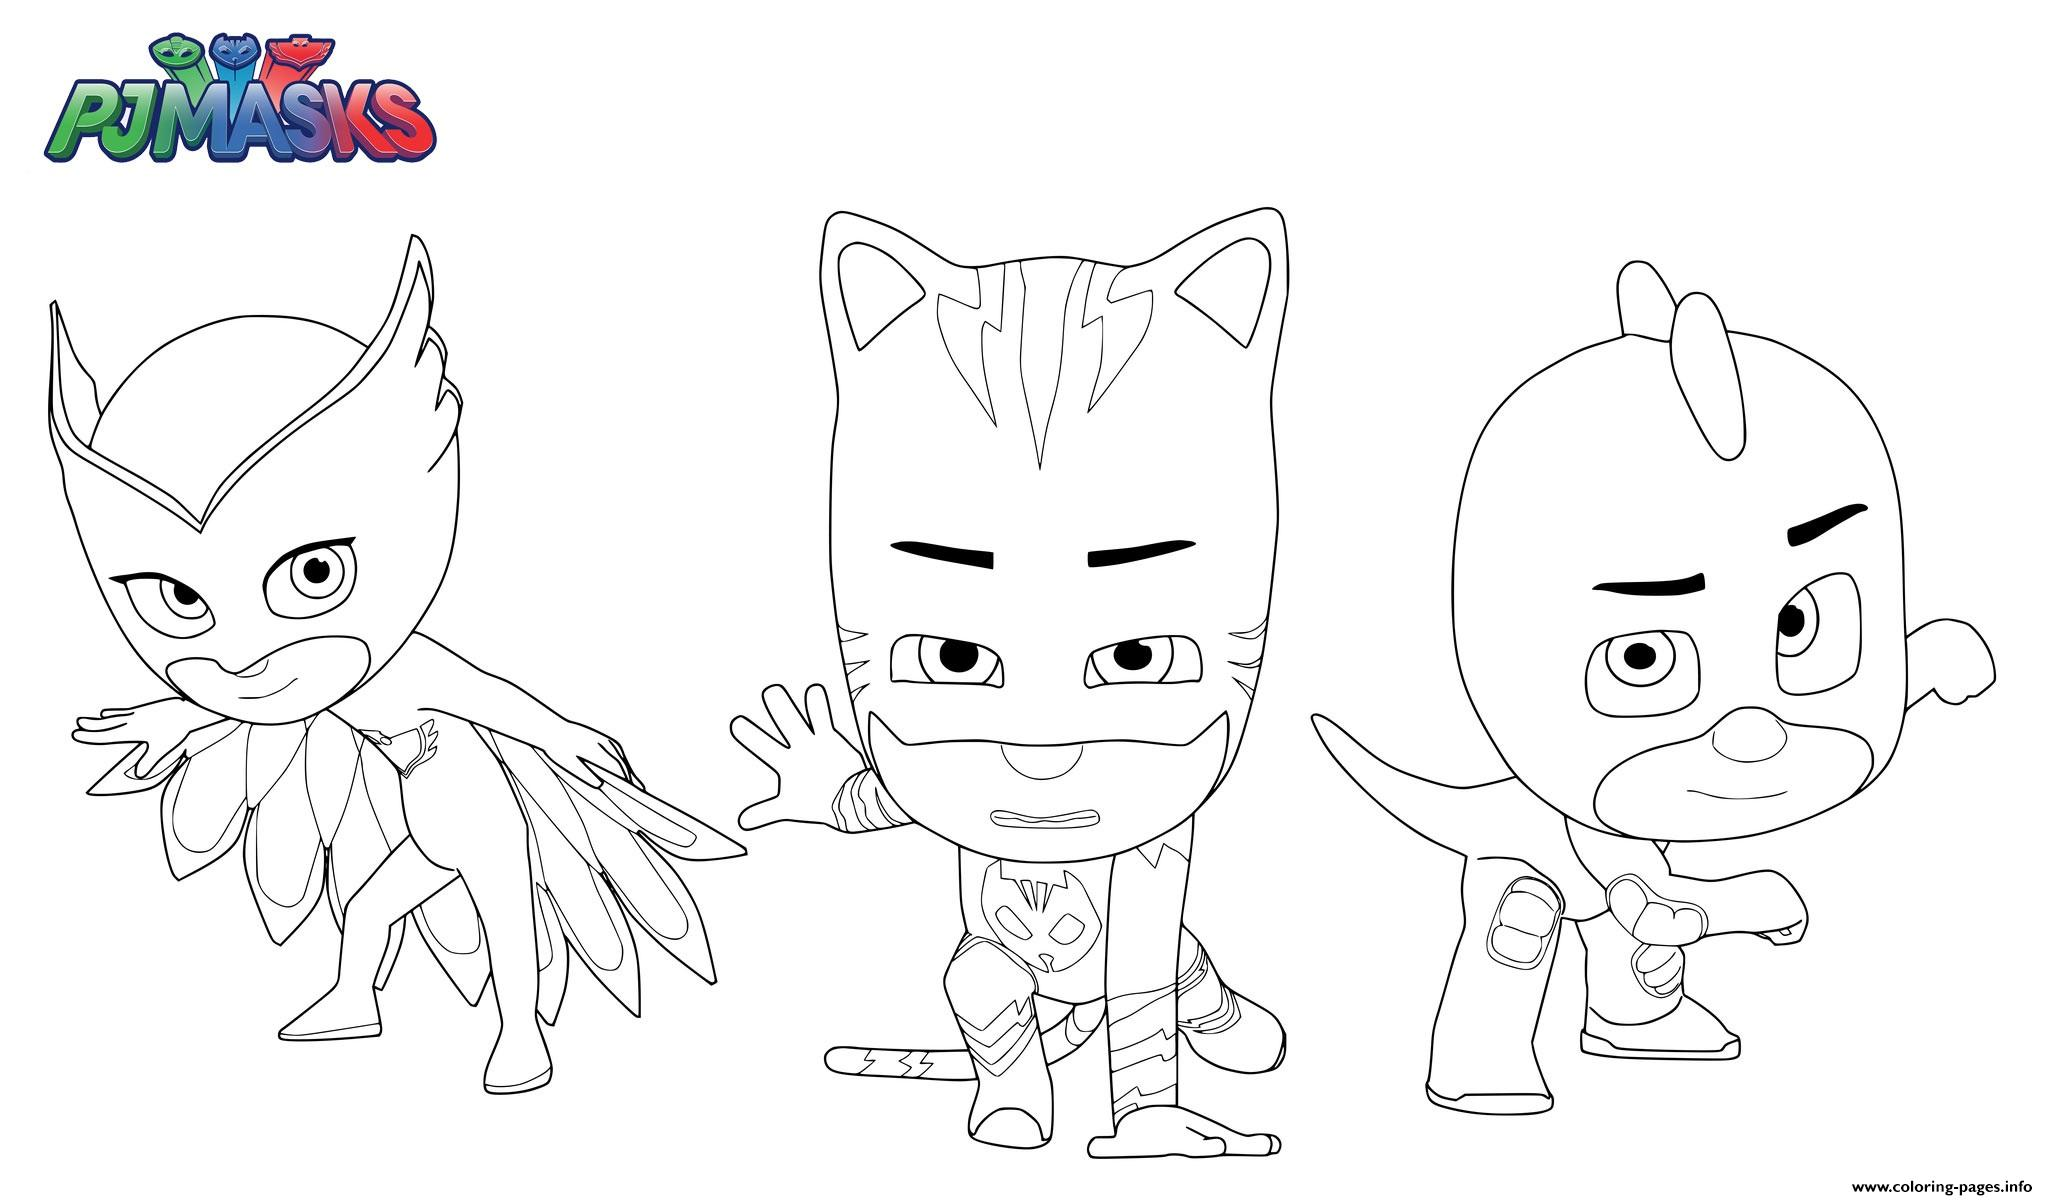 pj masks superheroes coloring pages - Super Heroes Coloring Book